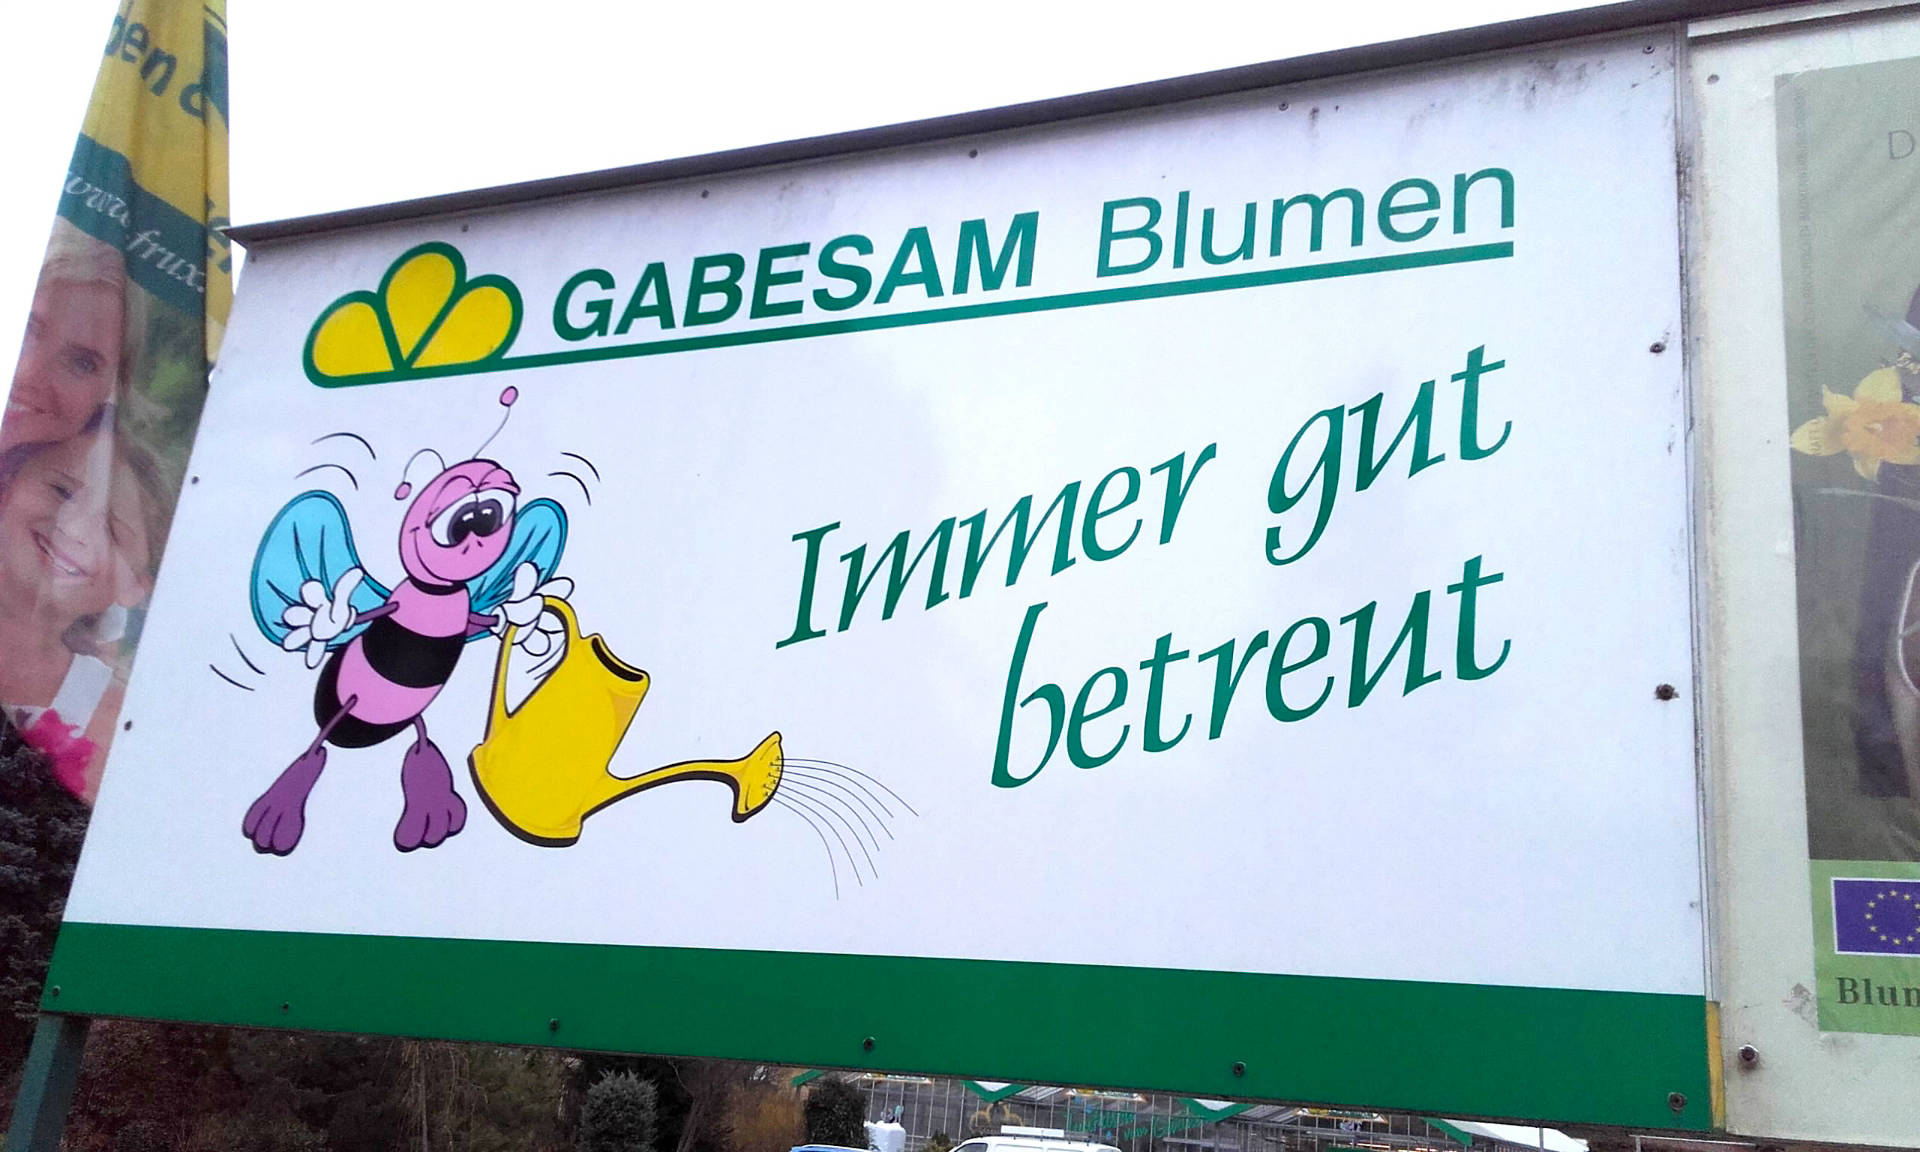 Exkursion Gärtnerei Gabesam - Bild 1